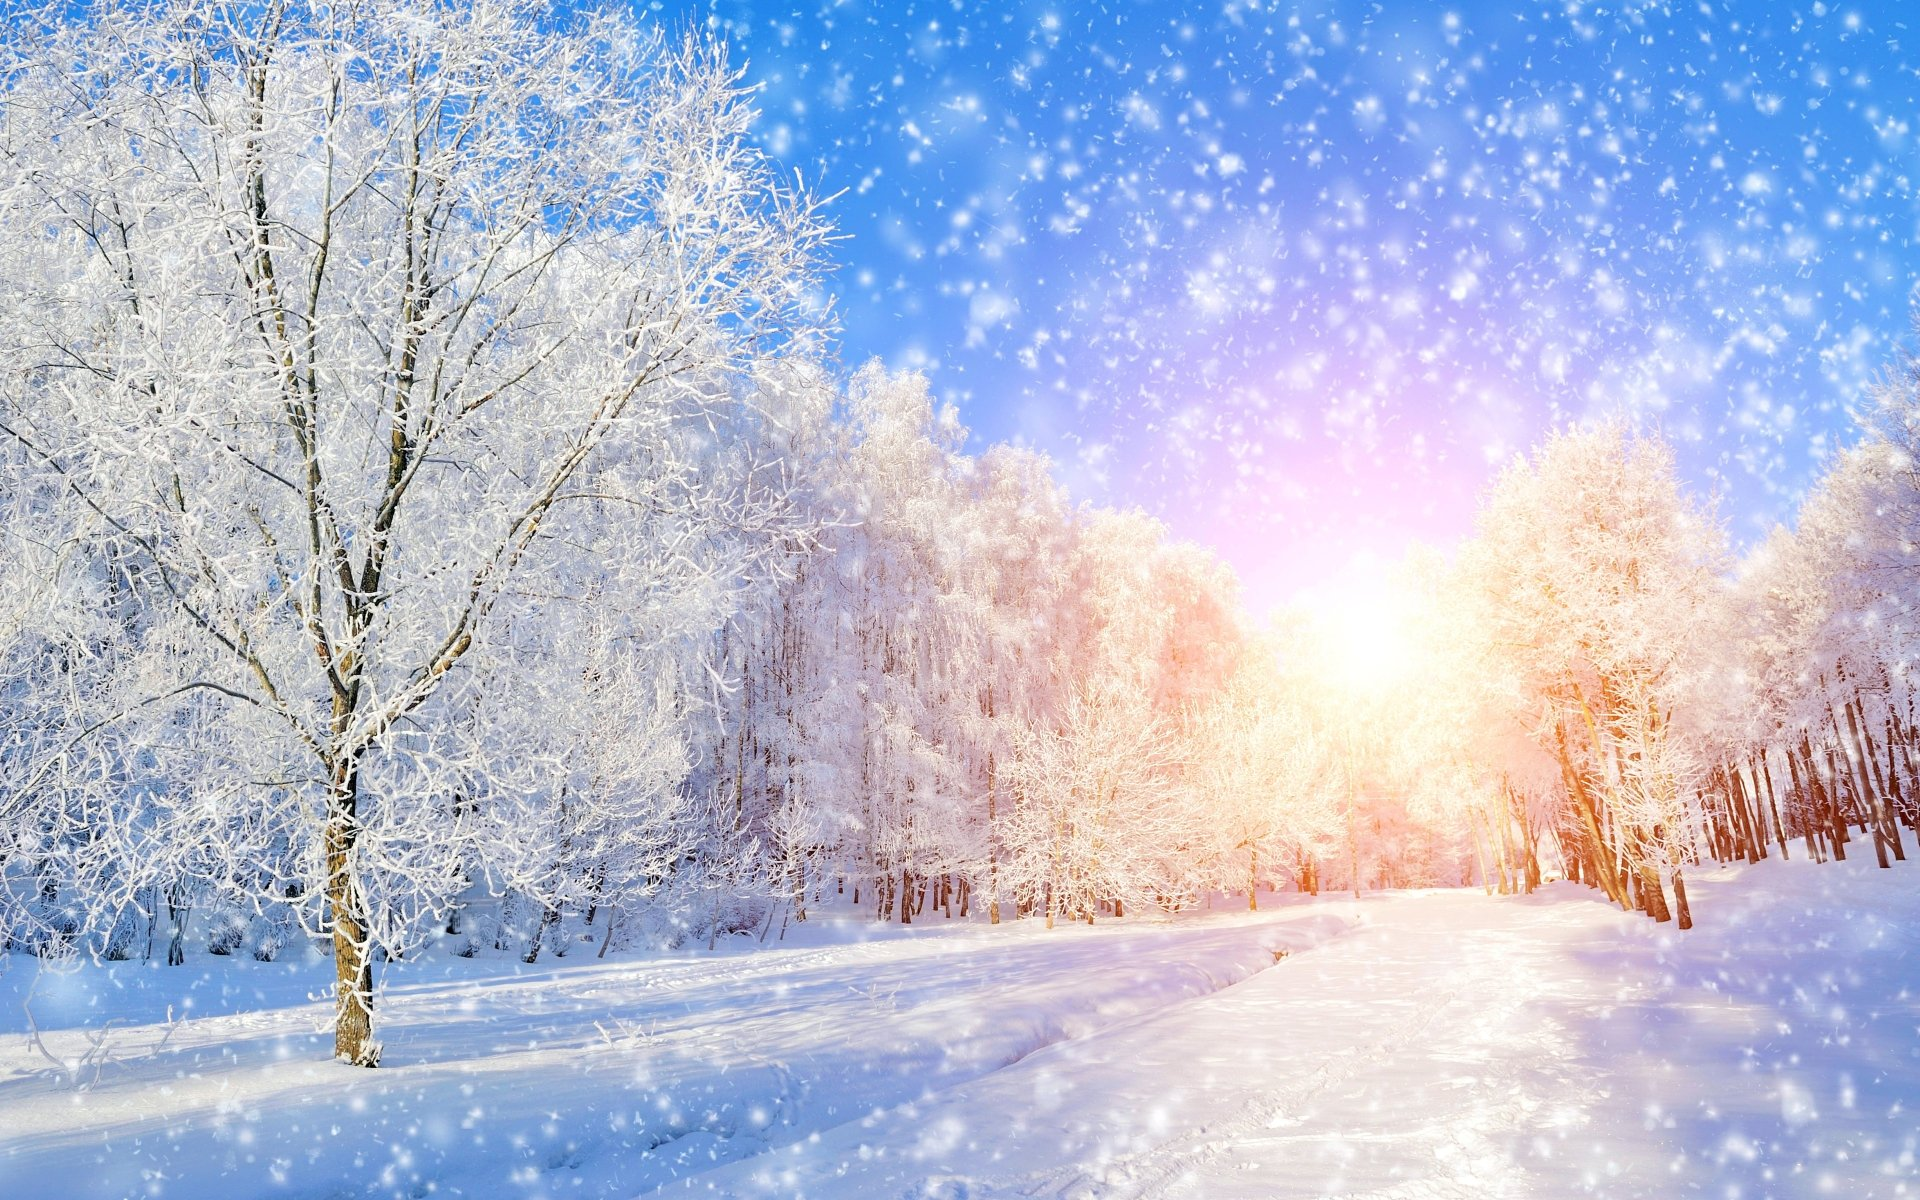 winter time wallpaper cool - photo #10